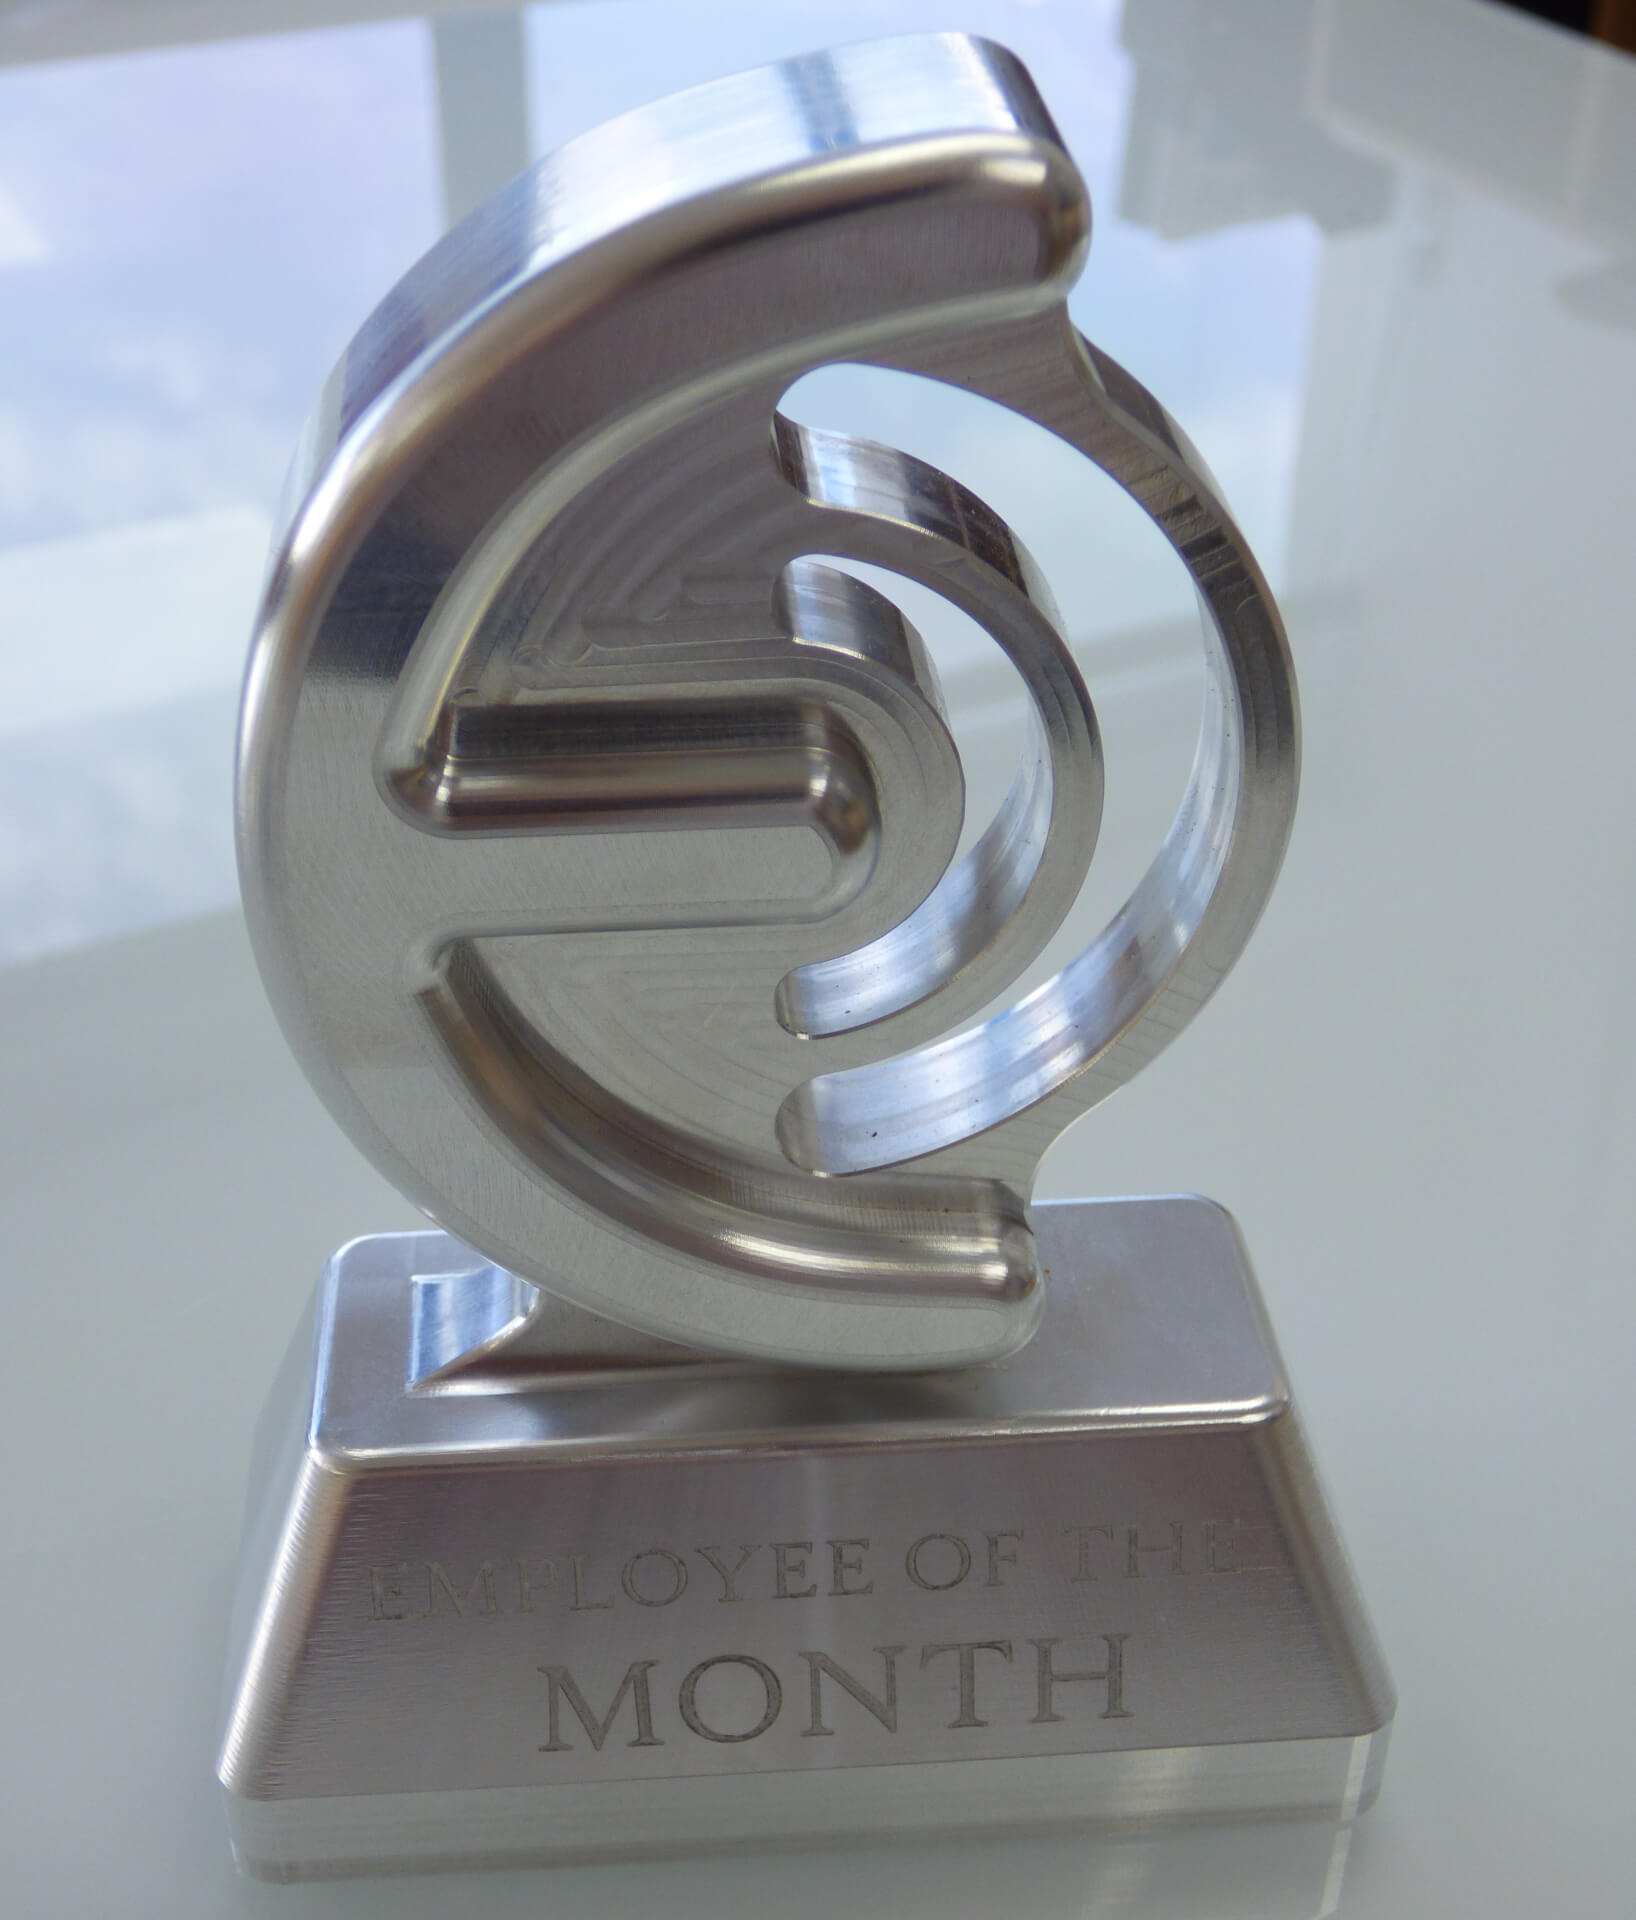 Employer of Month award